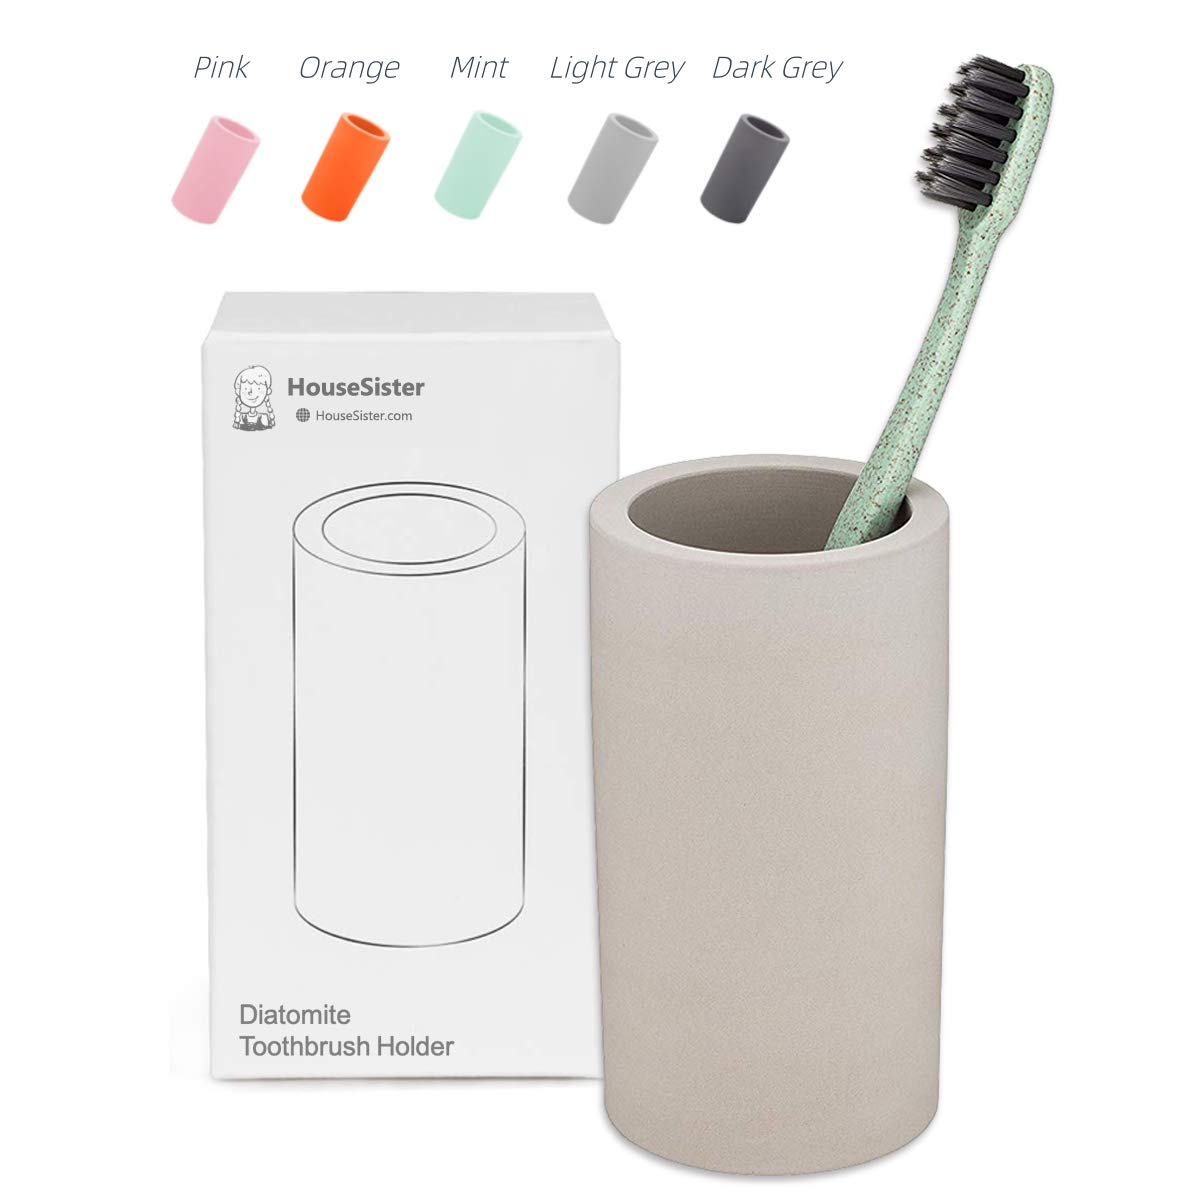 HouseSister Organic Diatomite Toothbrush Toothpaste Makeup Brushes Razors Holder Grey Bathroom Countertop Organizer Stand Cup Organizer (Light Grey)